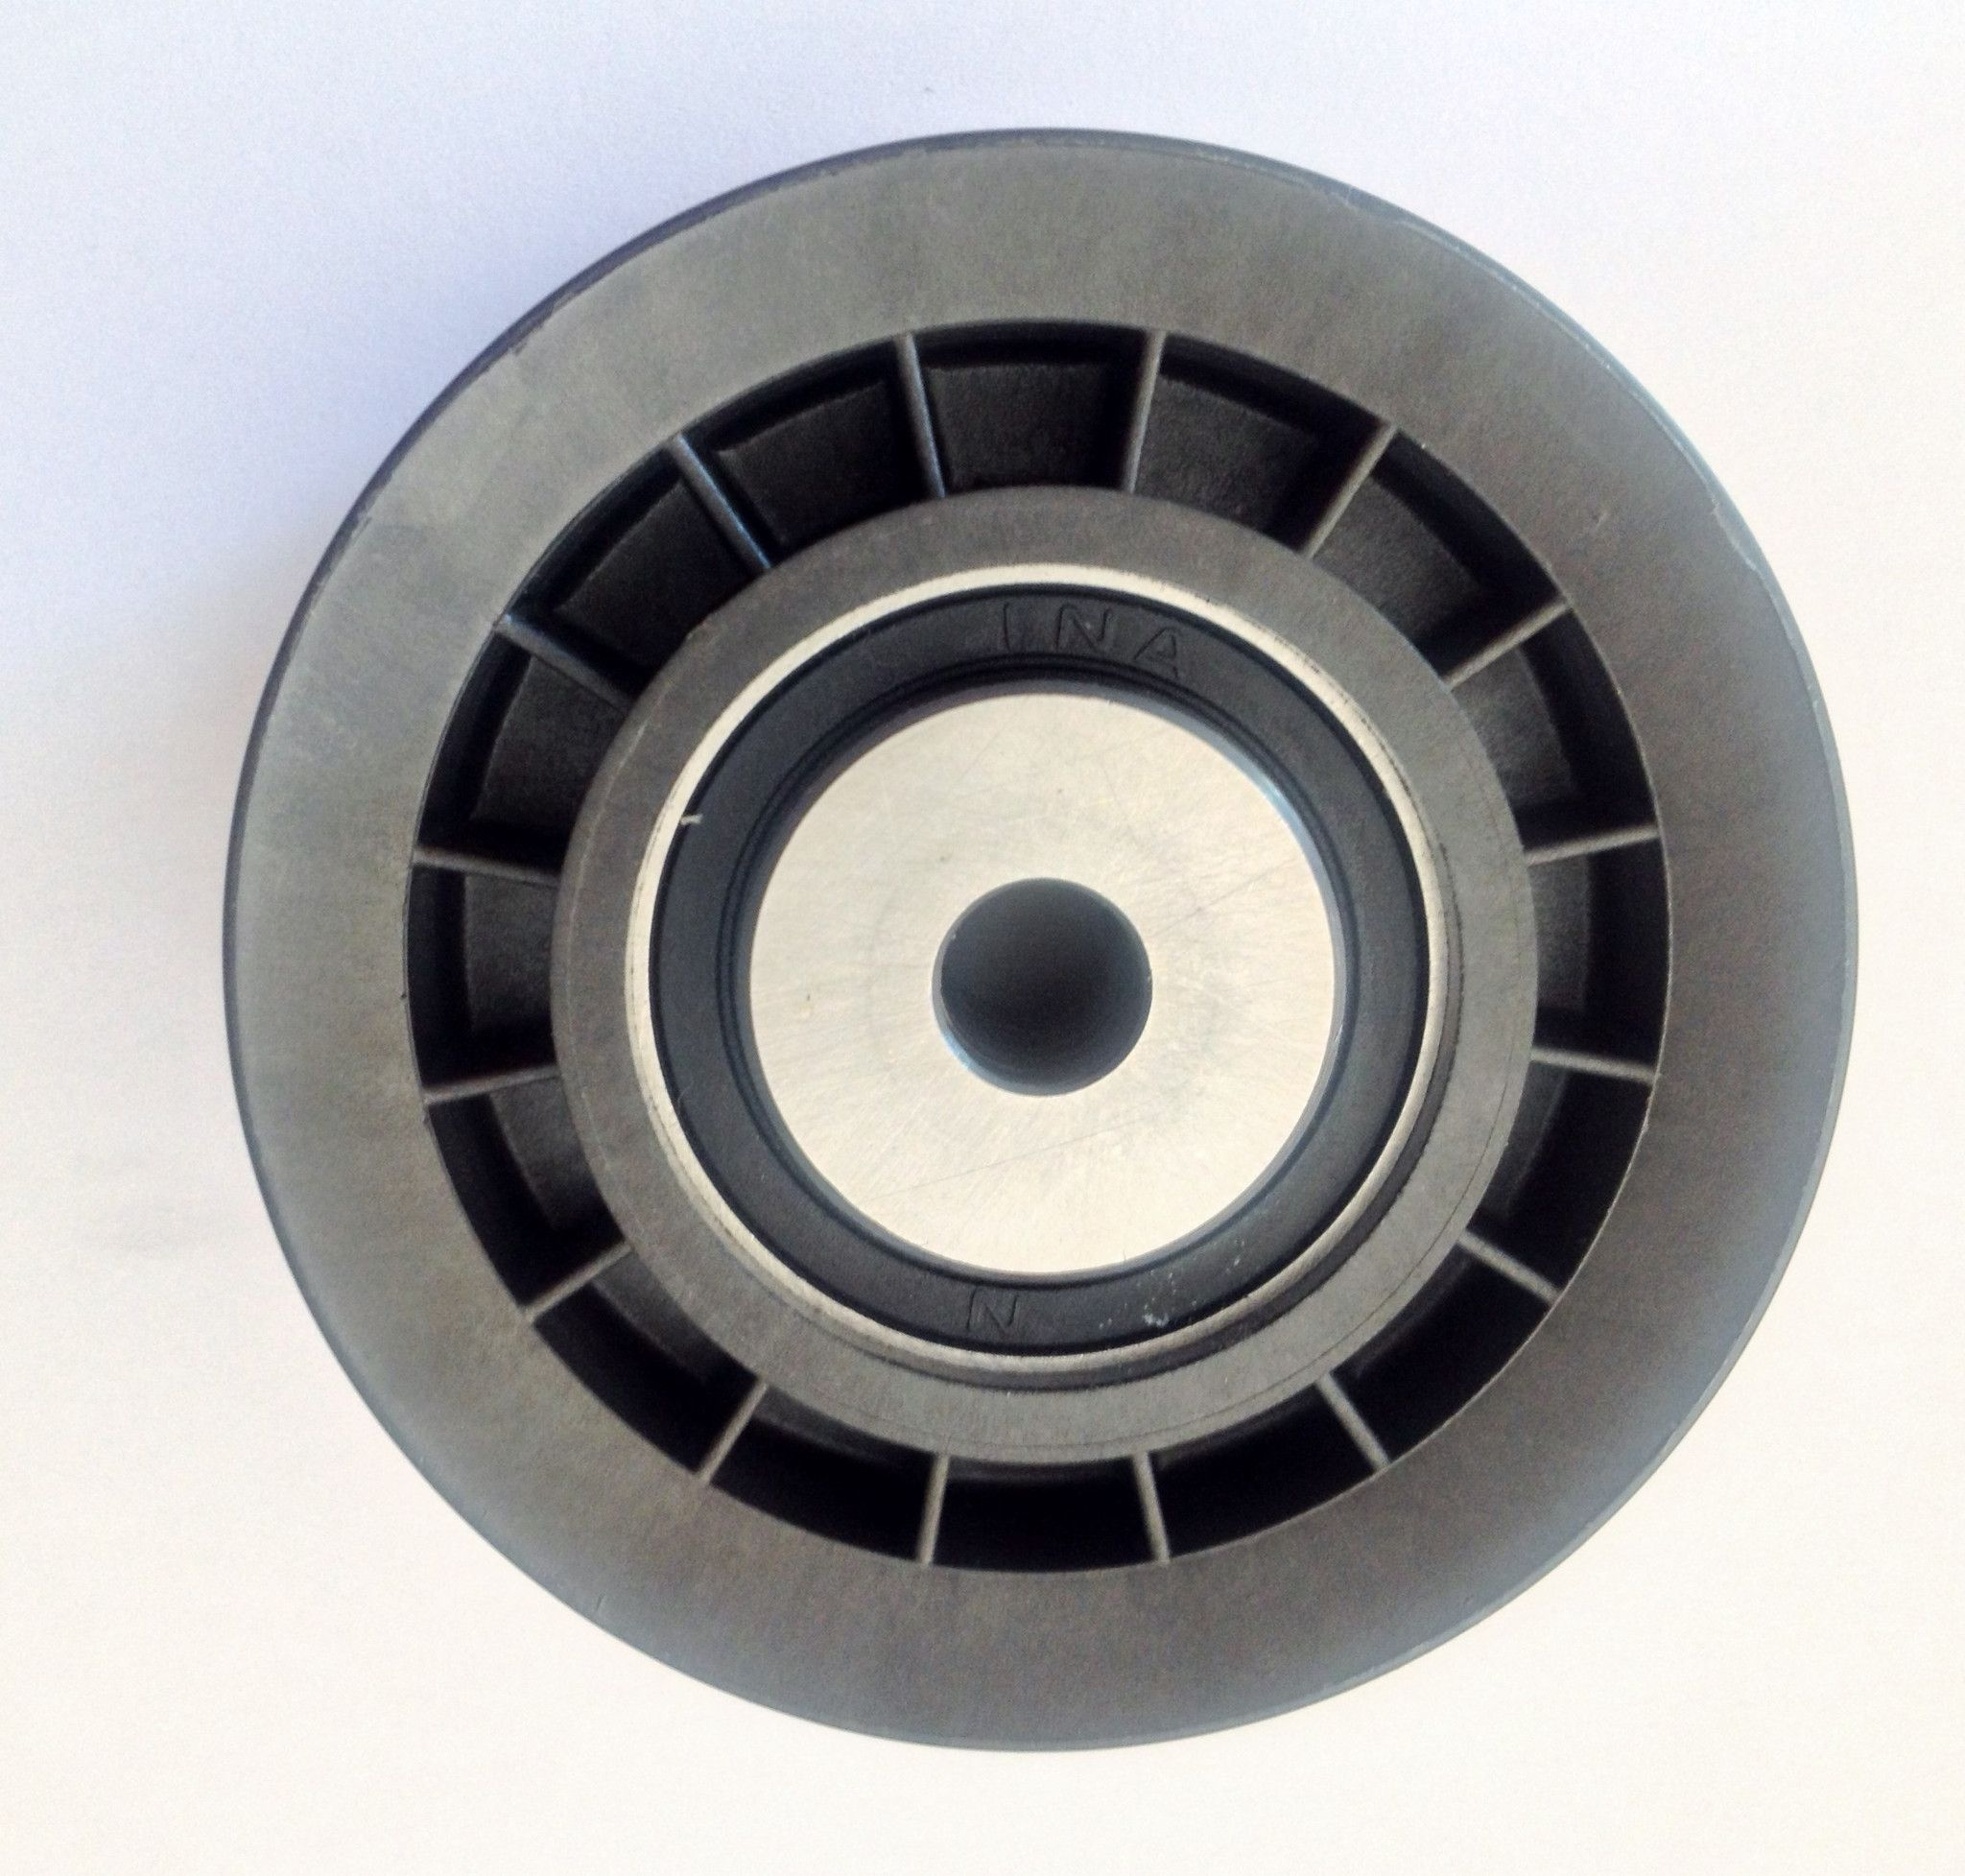 New Genuine Mercedes-benz Belt-tension Groove Pulley R129